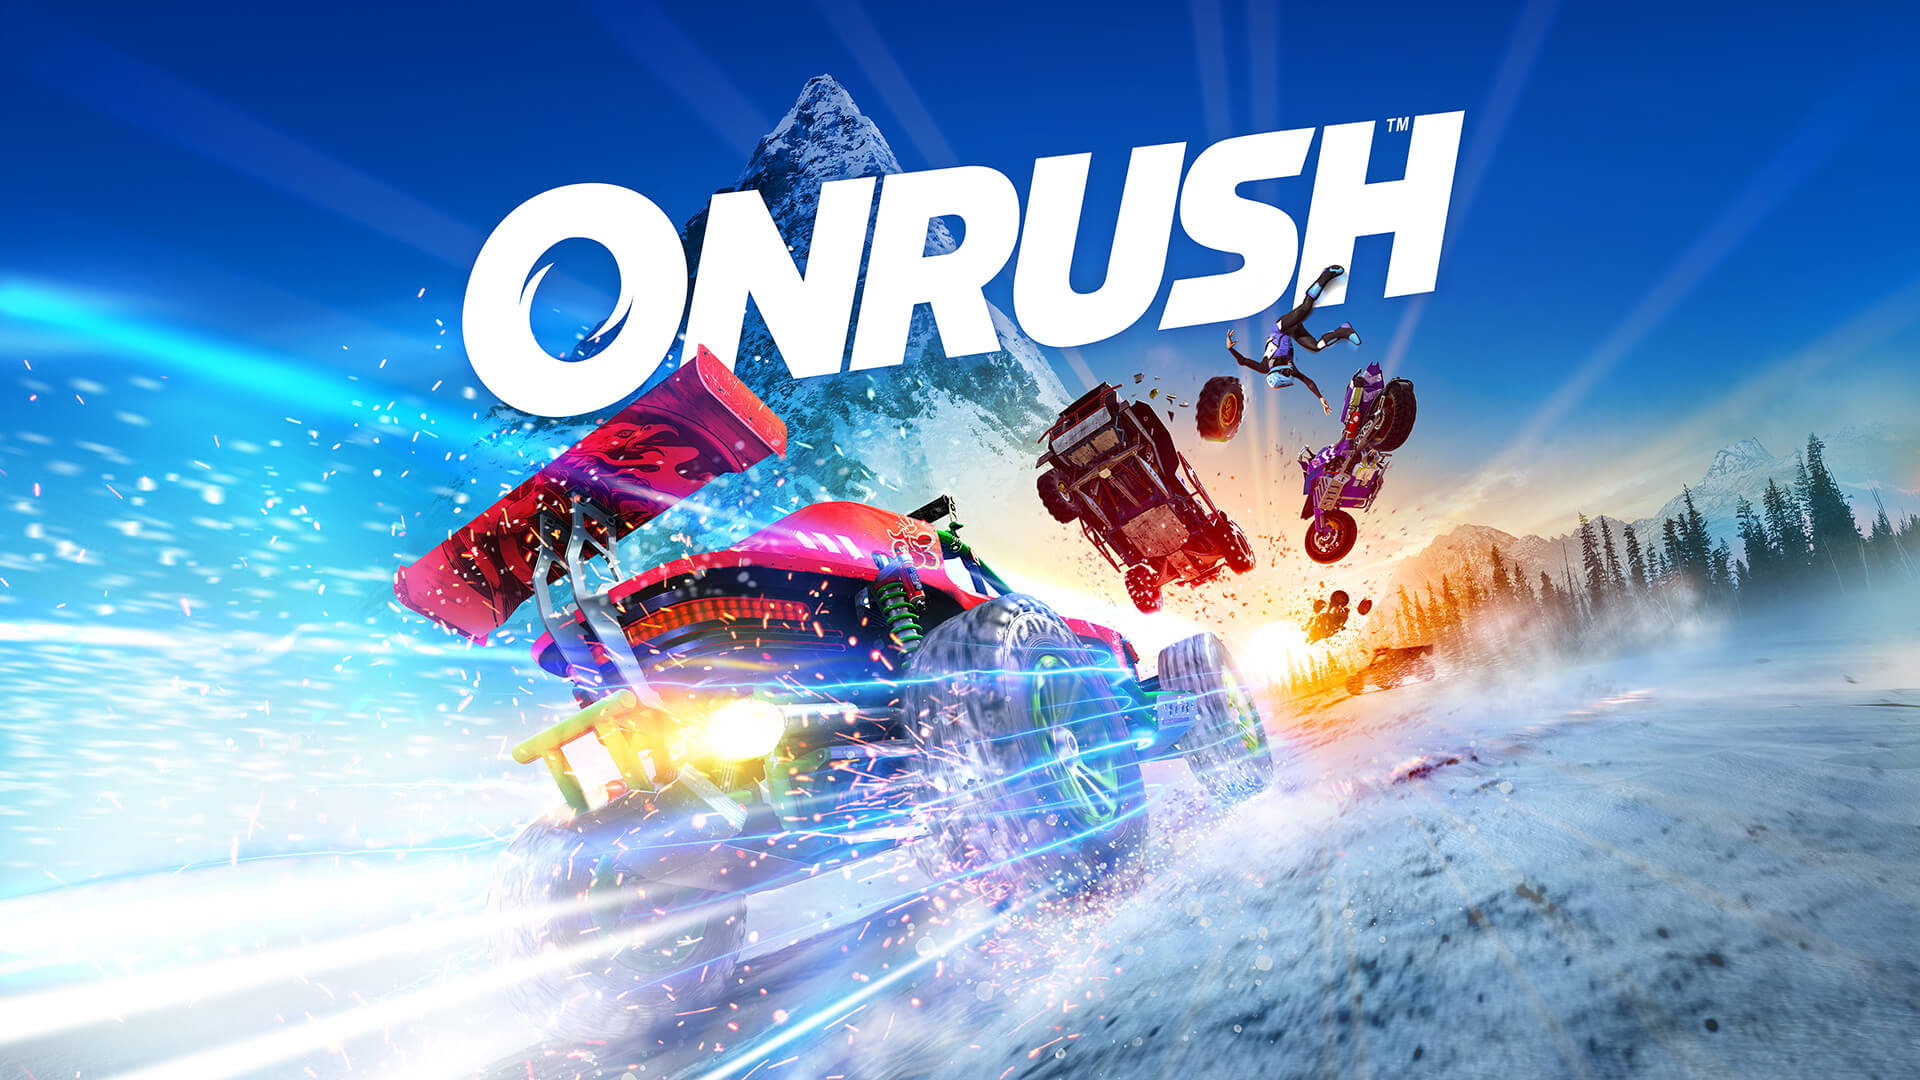 Onrush Xbox One X preview gameplay